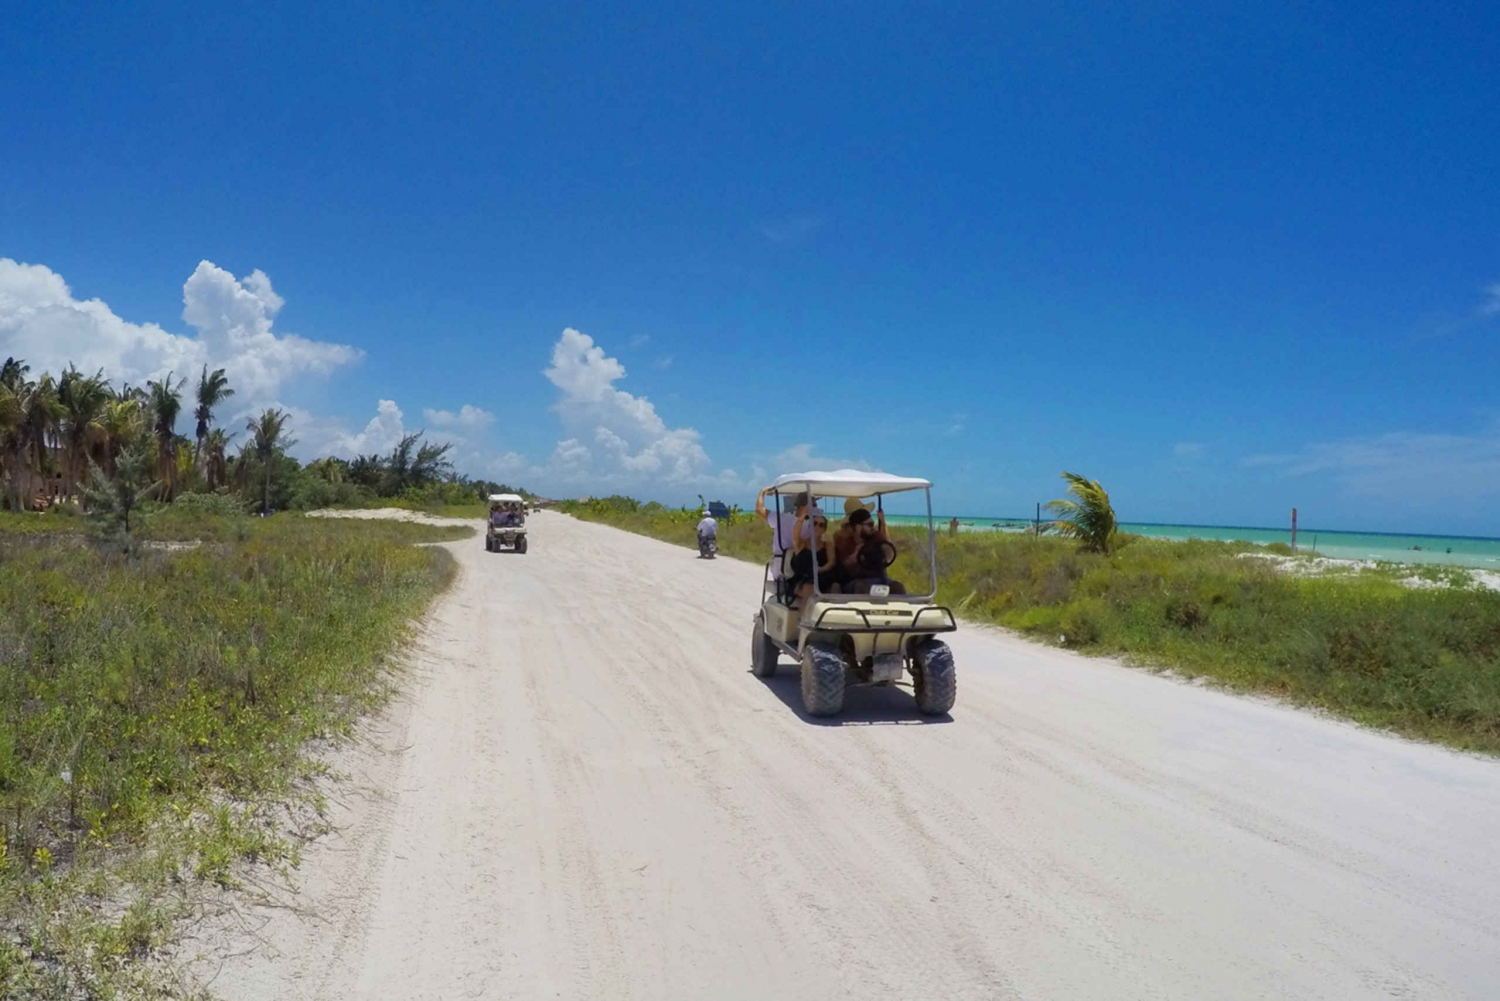 Holbox Island Day Trip from Cancun and Riviera Maya